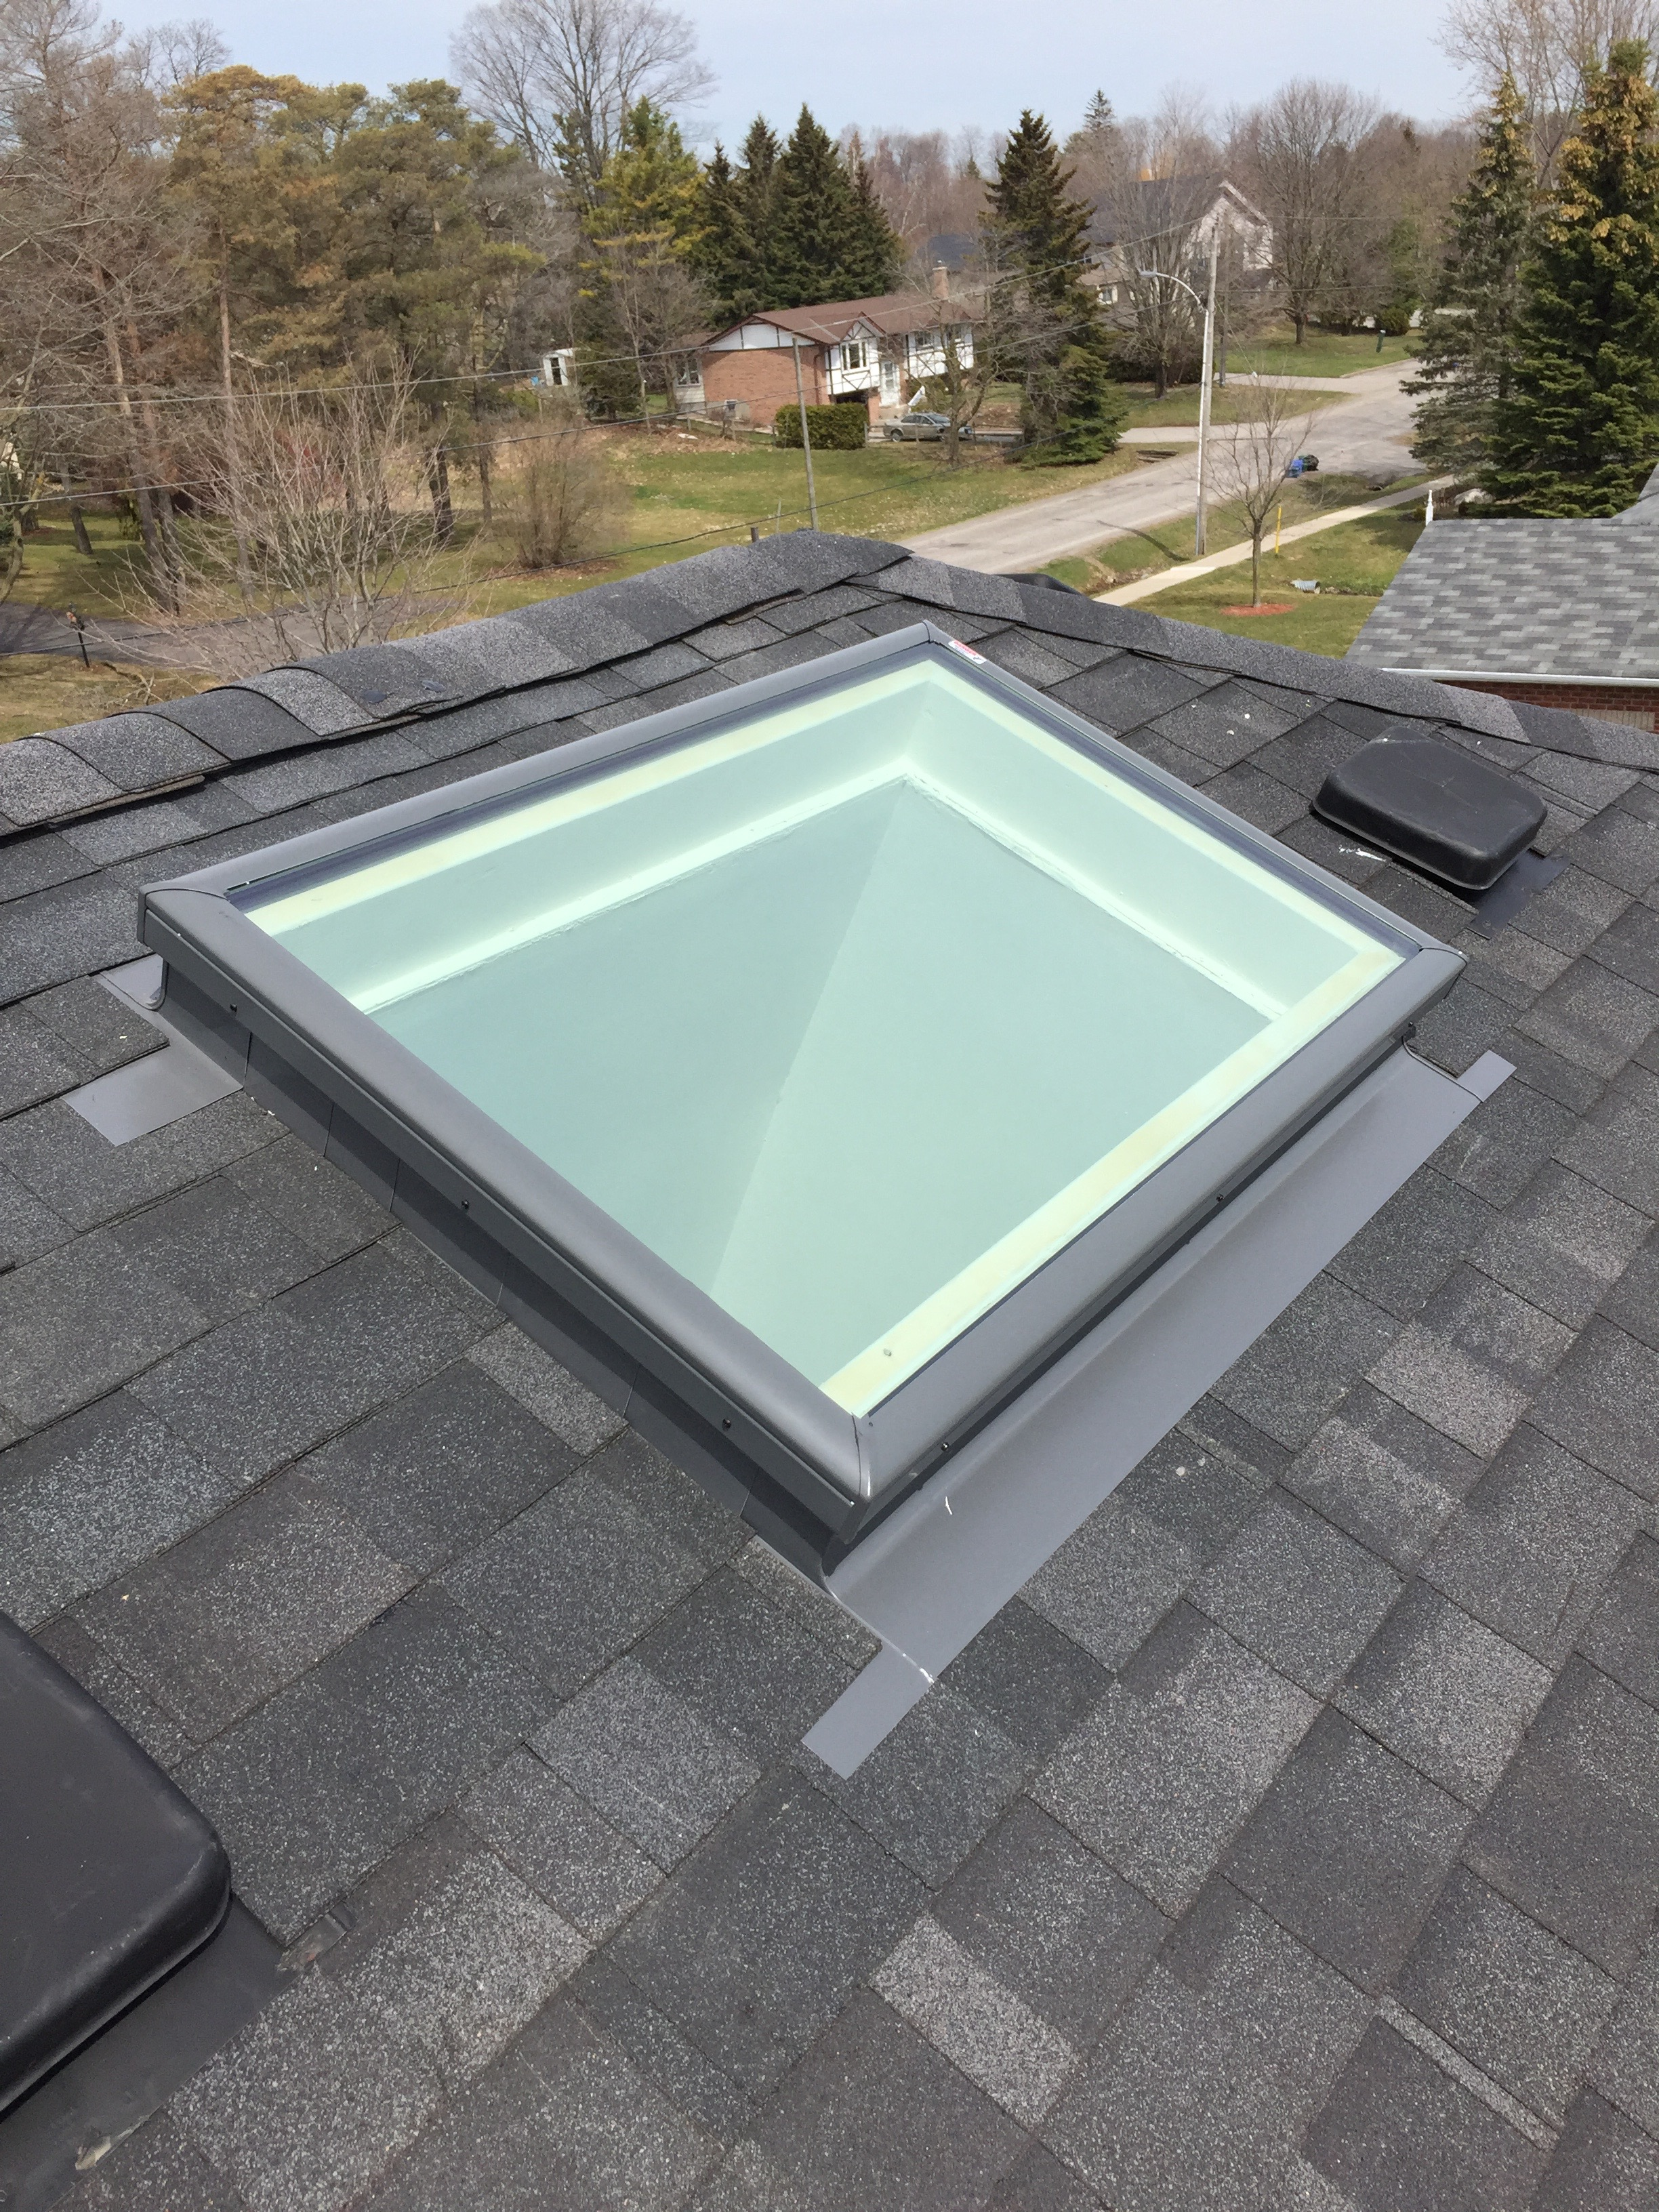 Courtice Skylight Repair